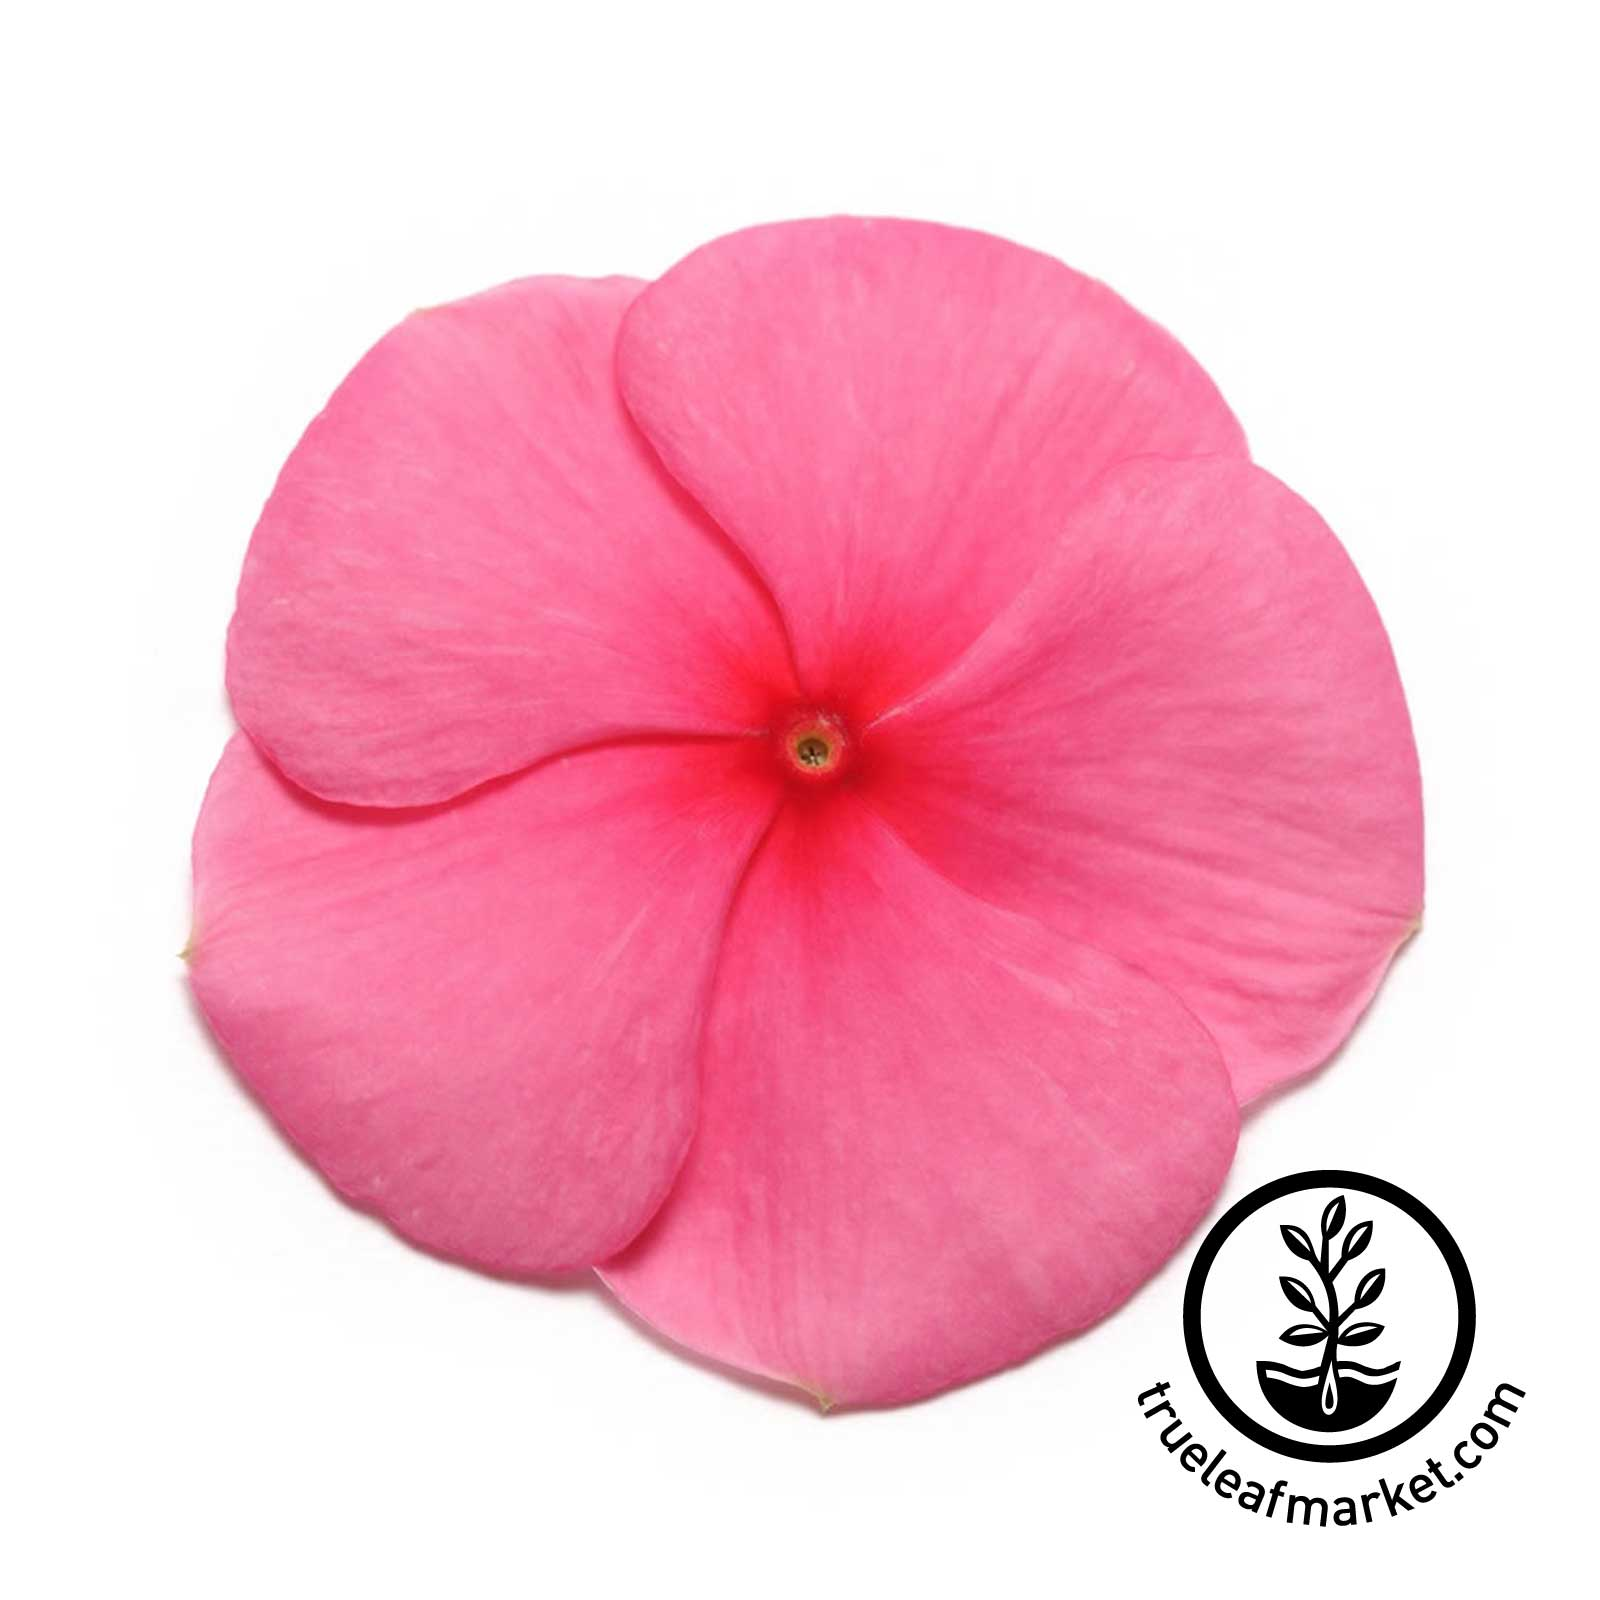 Vinca Pacifica XP Series Punch Seed